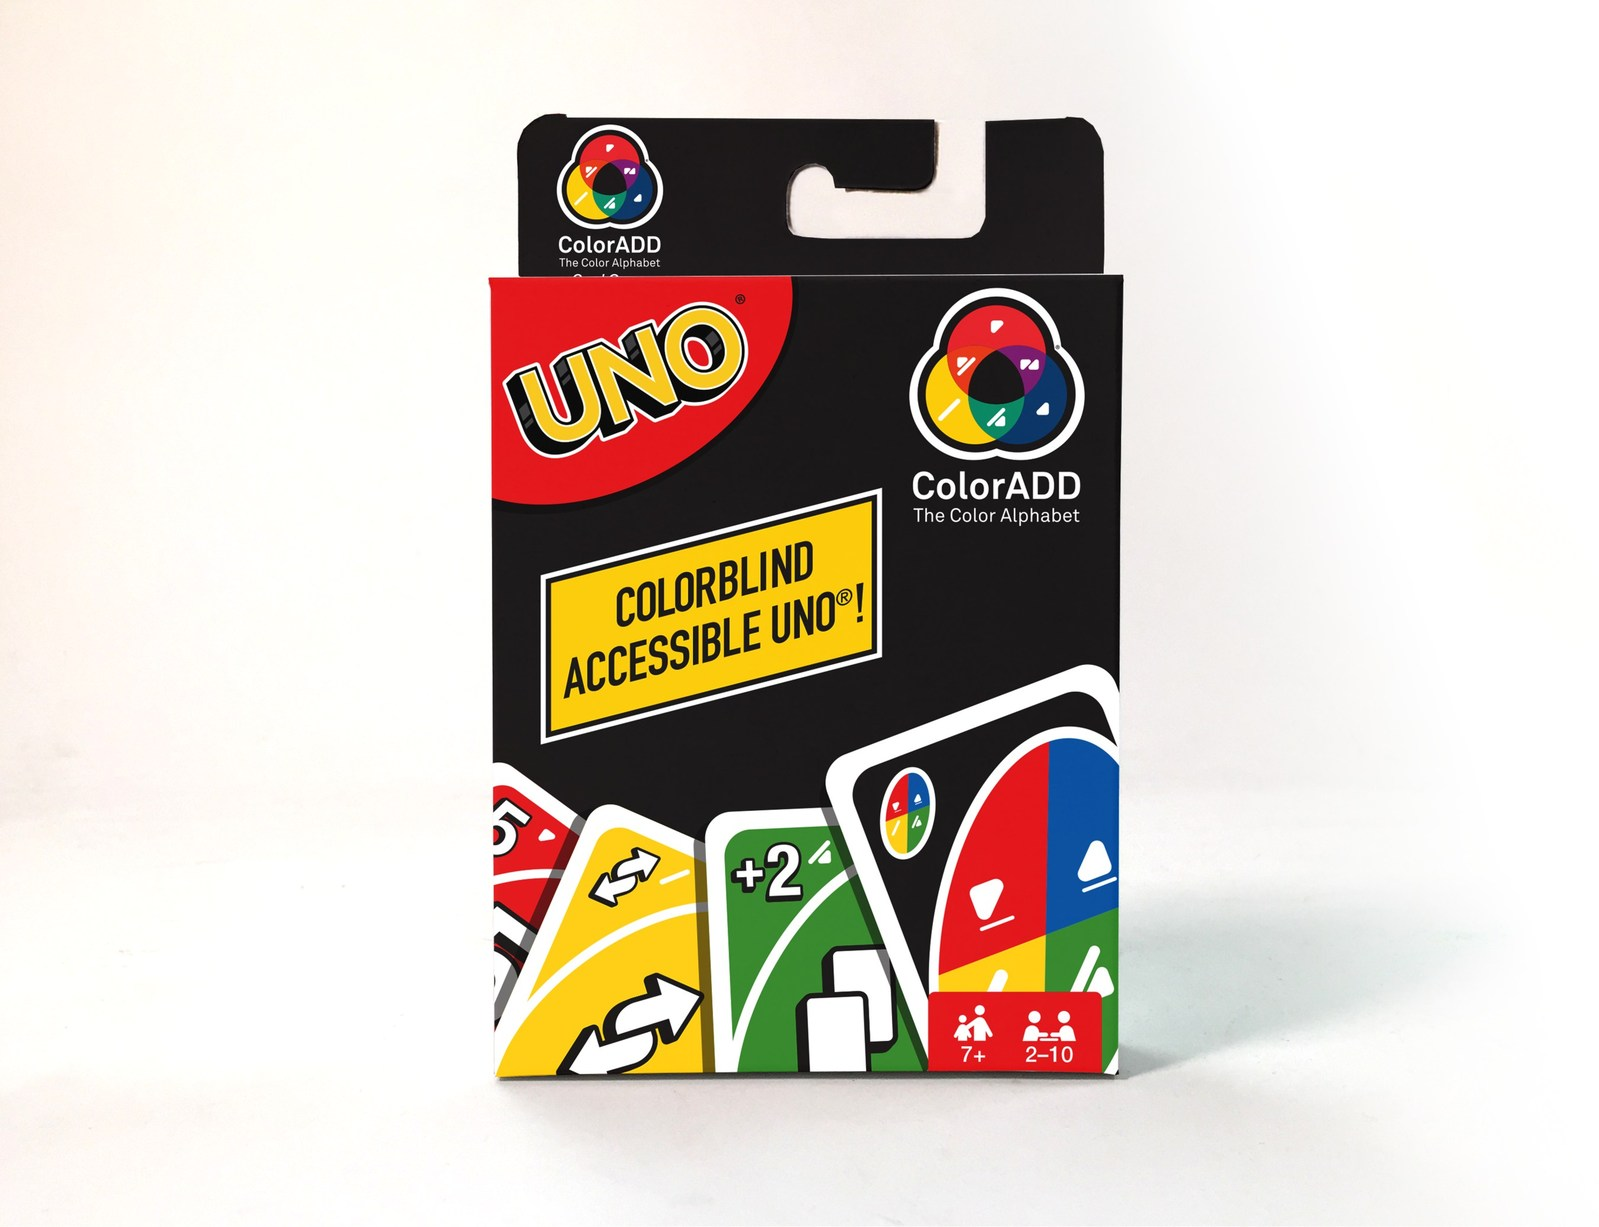 Game for colors -  And Well Known Card Game Like Uno Finally Acknowledge Colorblind People Is A Significant Move It S Also An Idea That Has Occurred To Some Before